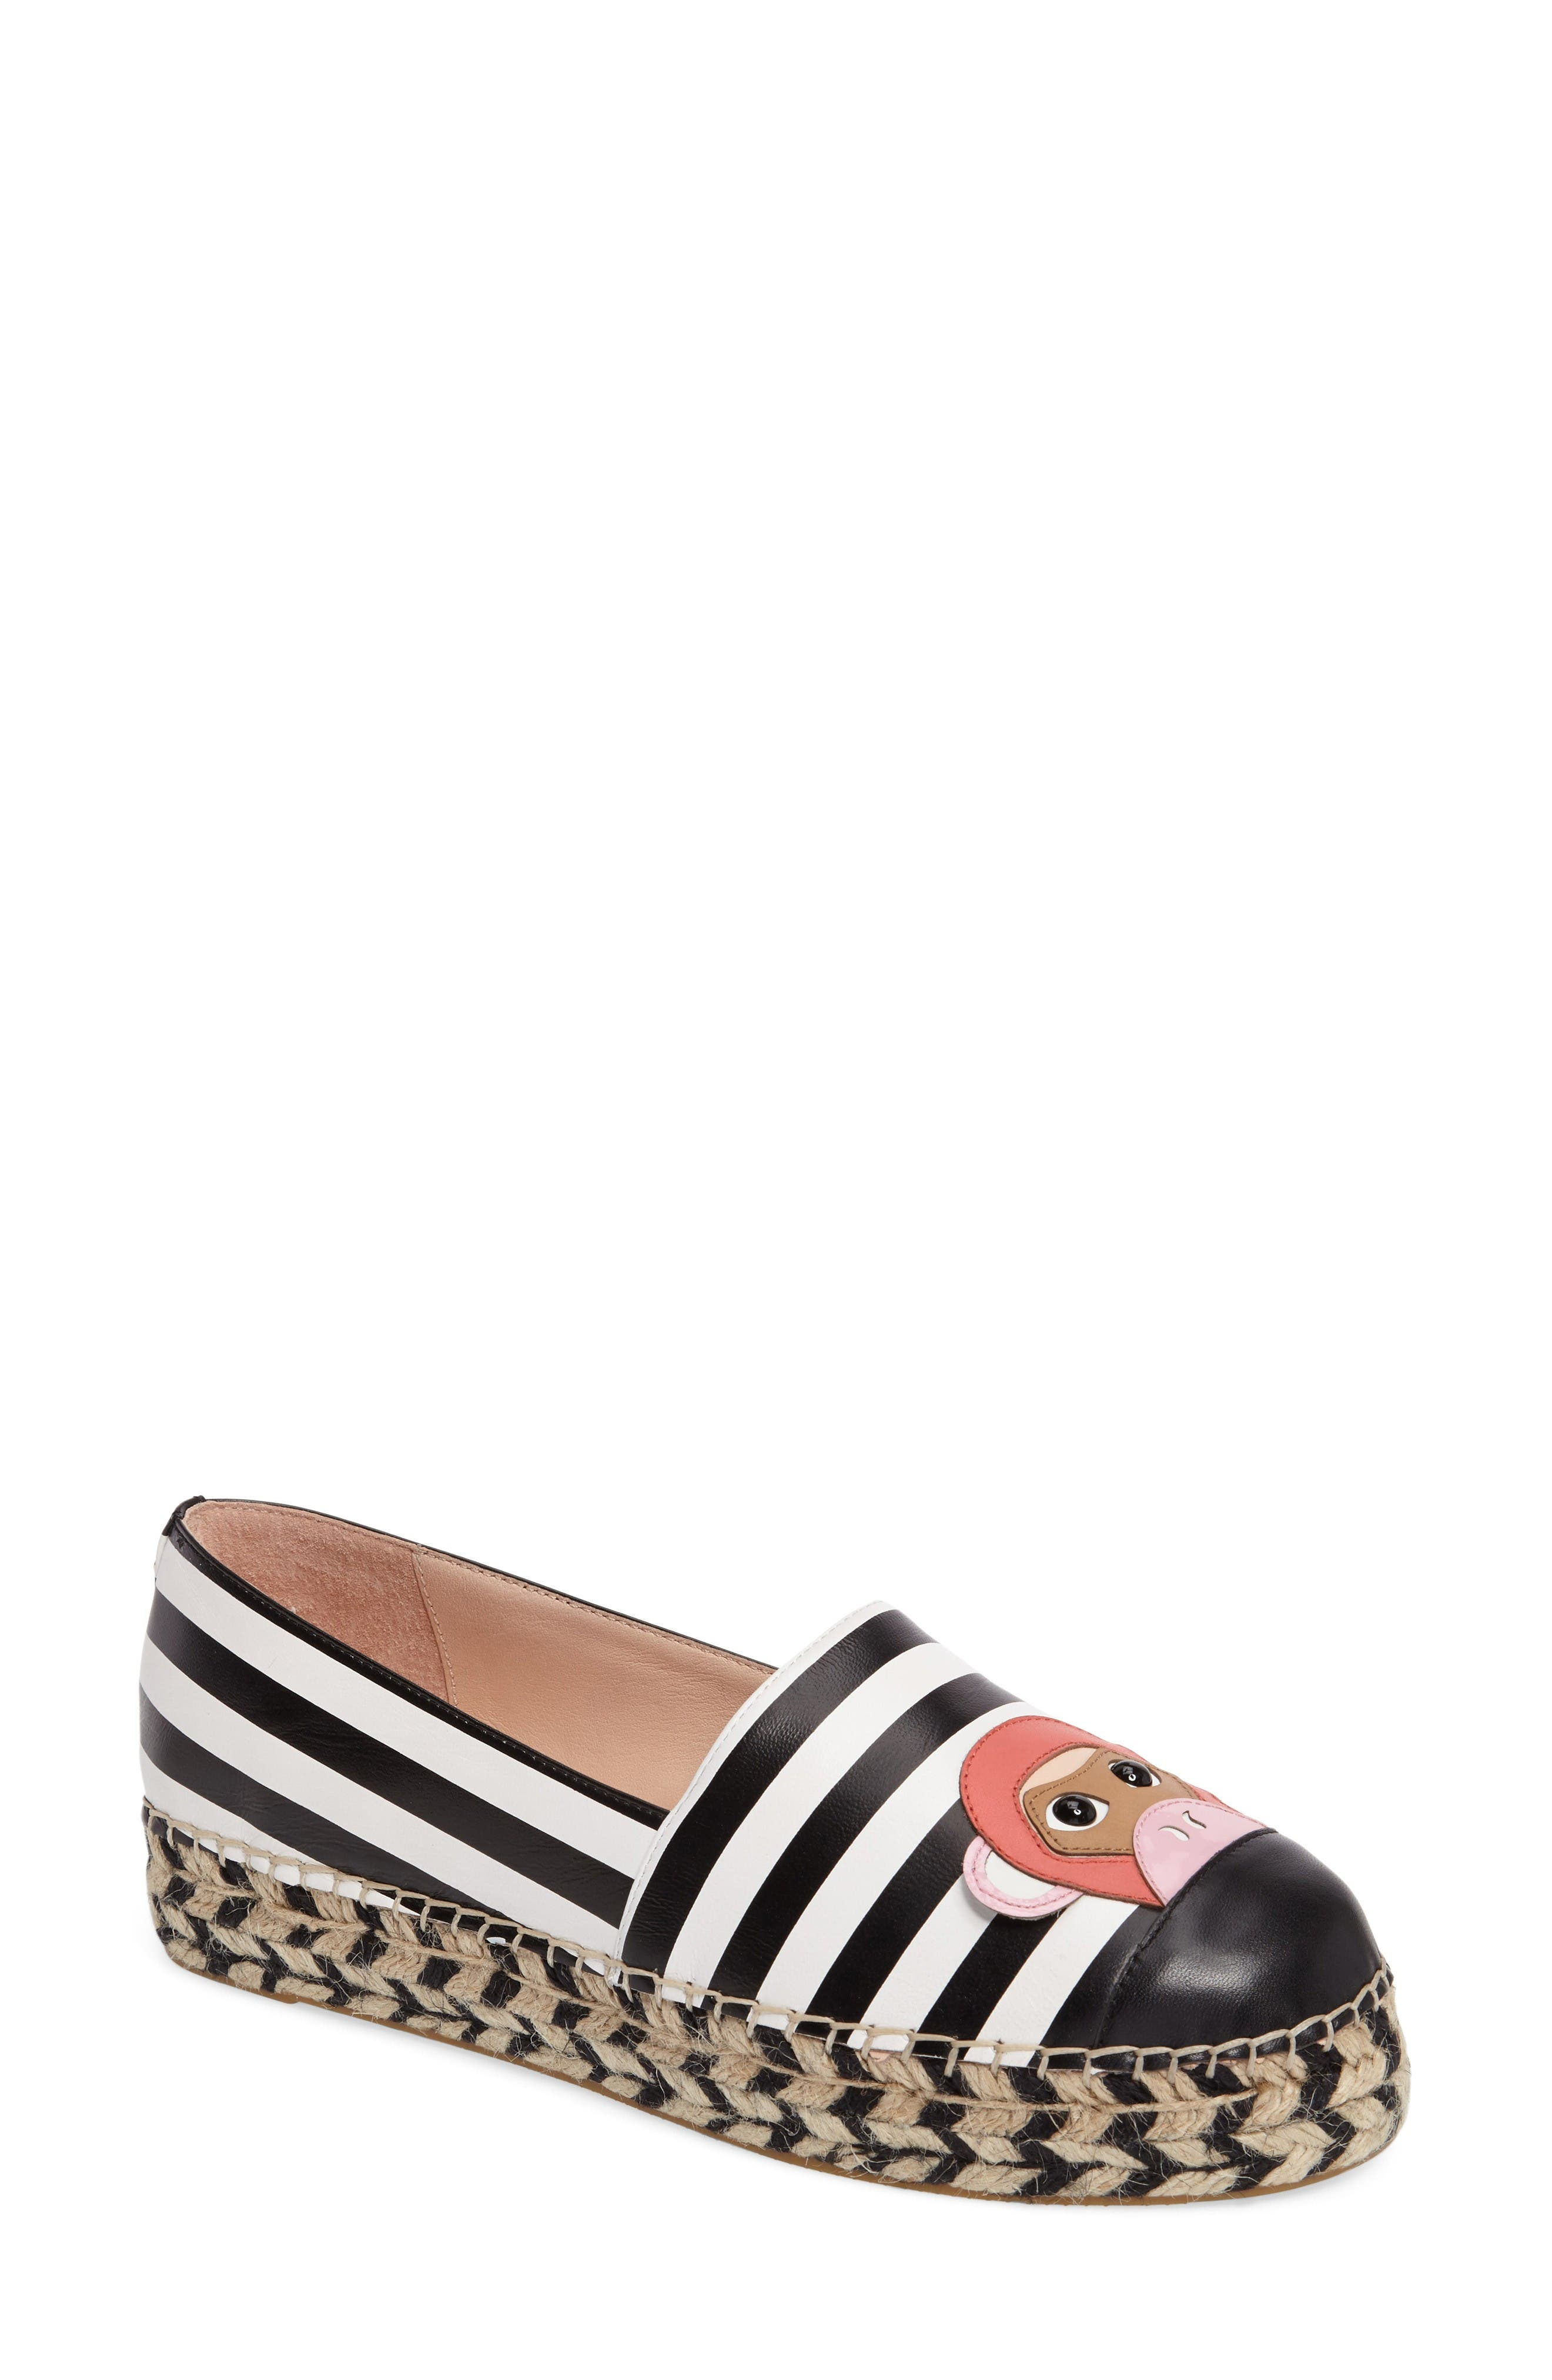 KATE SPADE NEW YORK lincoln platform espadrille